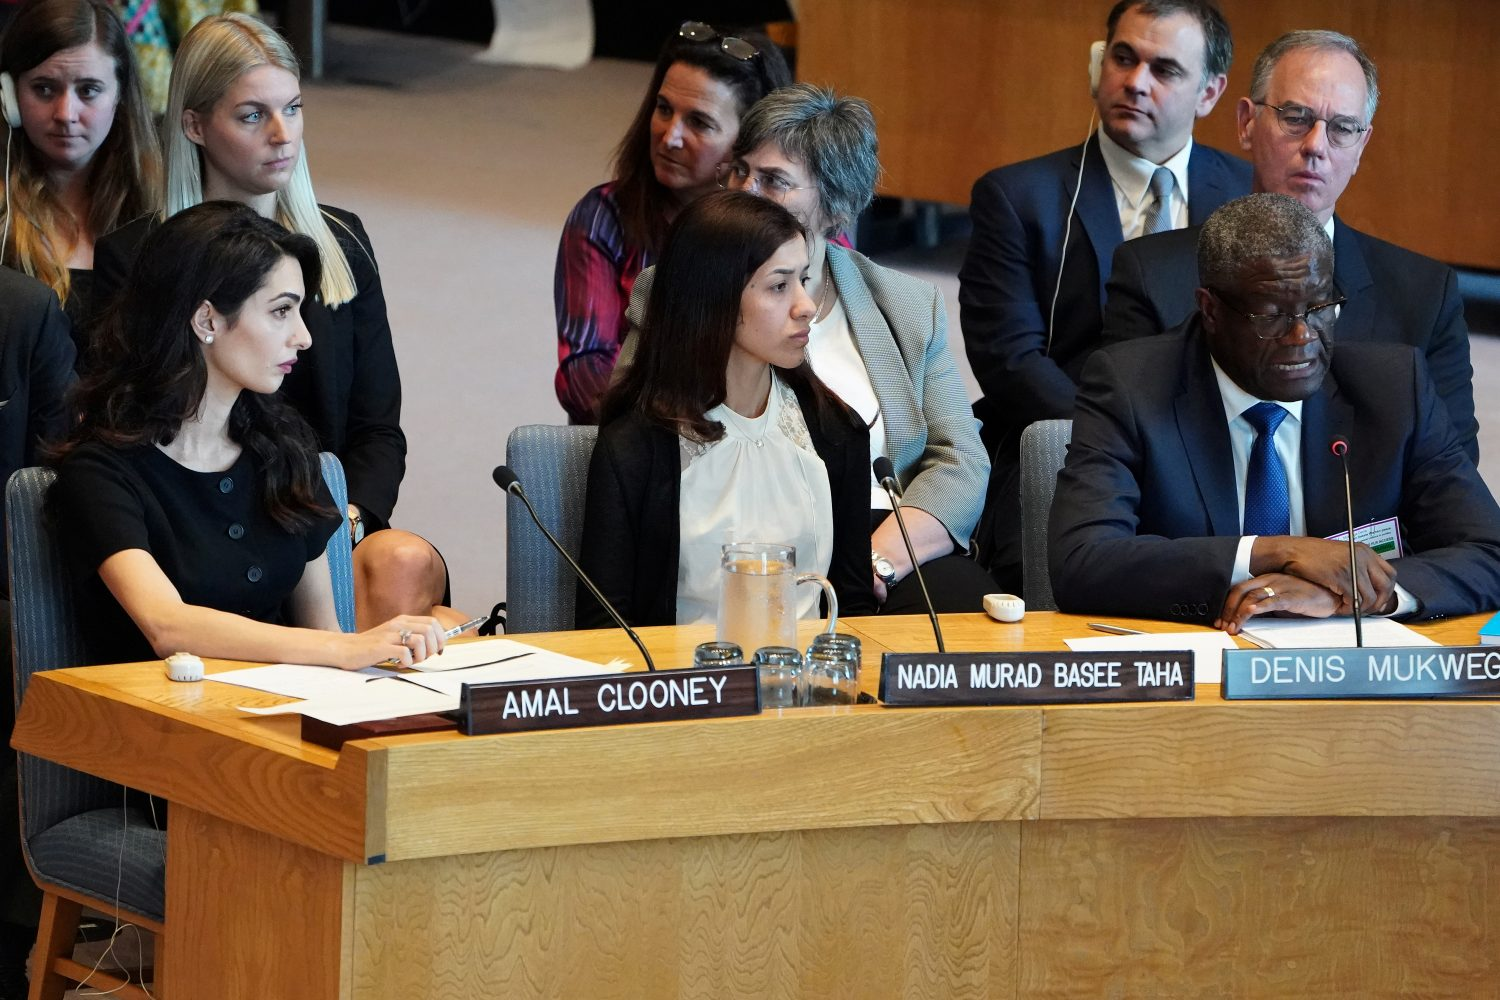 Amal Clooney and Nadia Murad listen to Denis Mukwege speaking at the United Nations Security Council during a meeting about sexual violence in conflict in New York, New York, U.S., April 23, 2019. REUTERS/Carlo Allegri